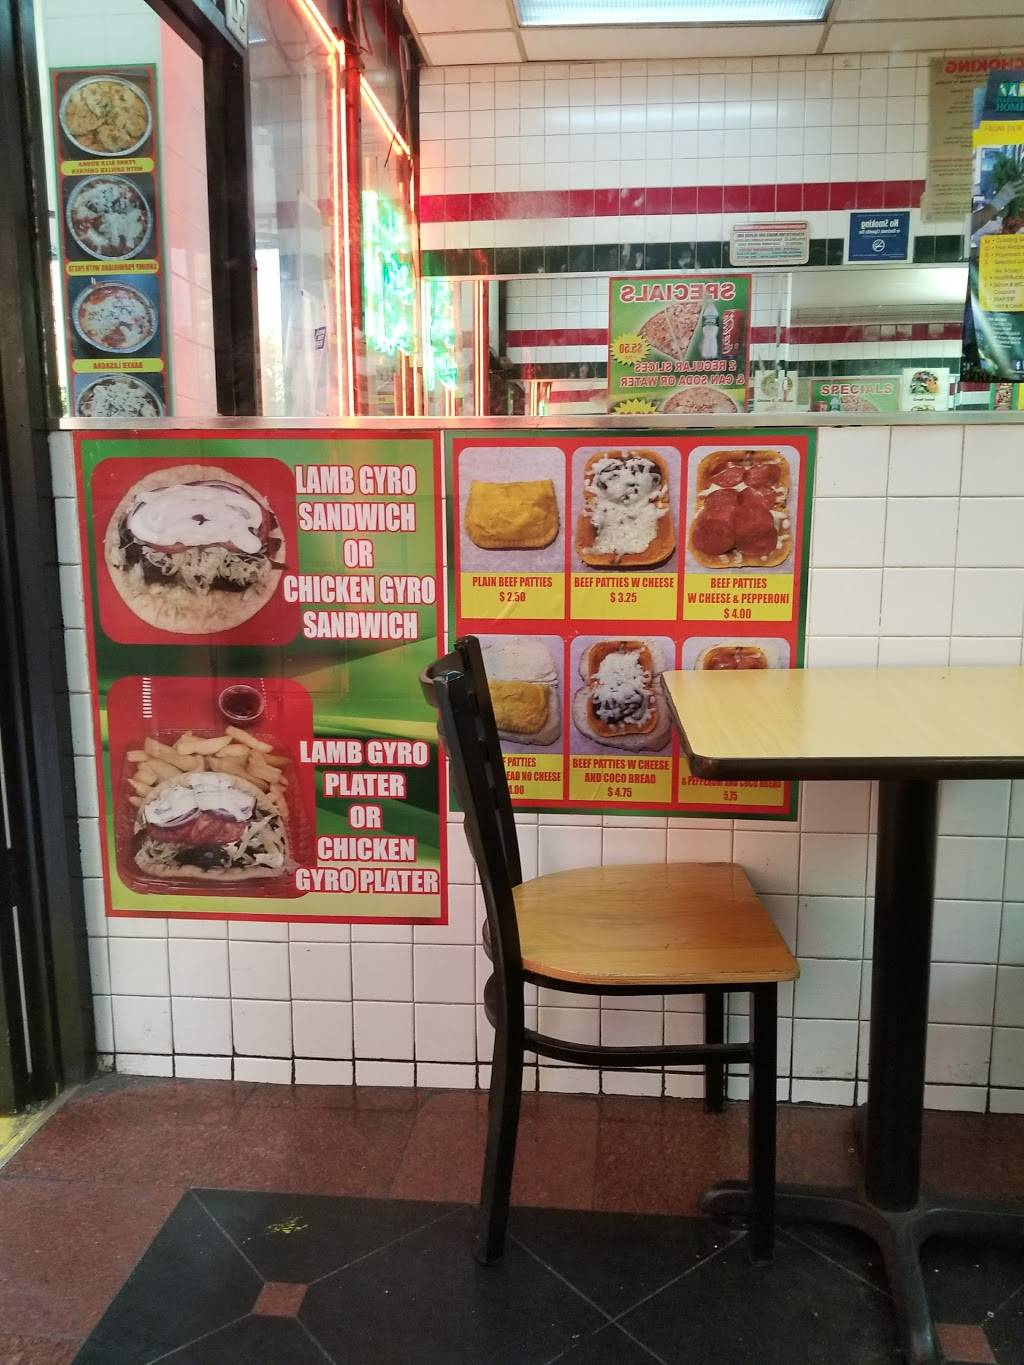 Dreamers Pizza   meal delivery   1850 3rd Ave, New York, NY 10029, USA   2129875414 OR +1 212-987-5414